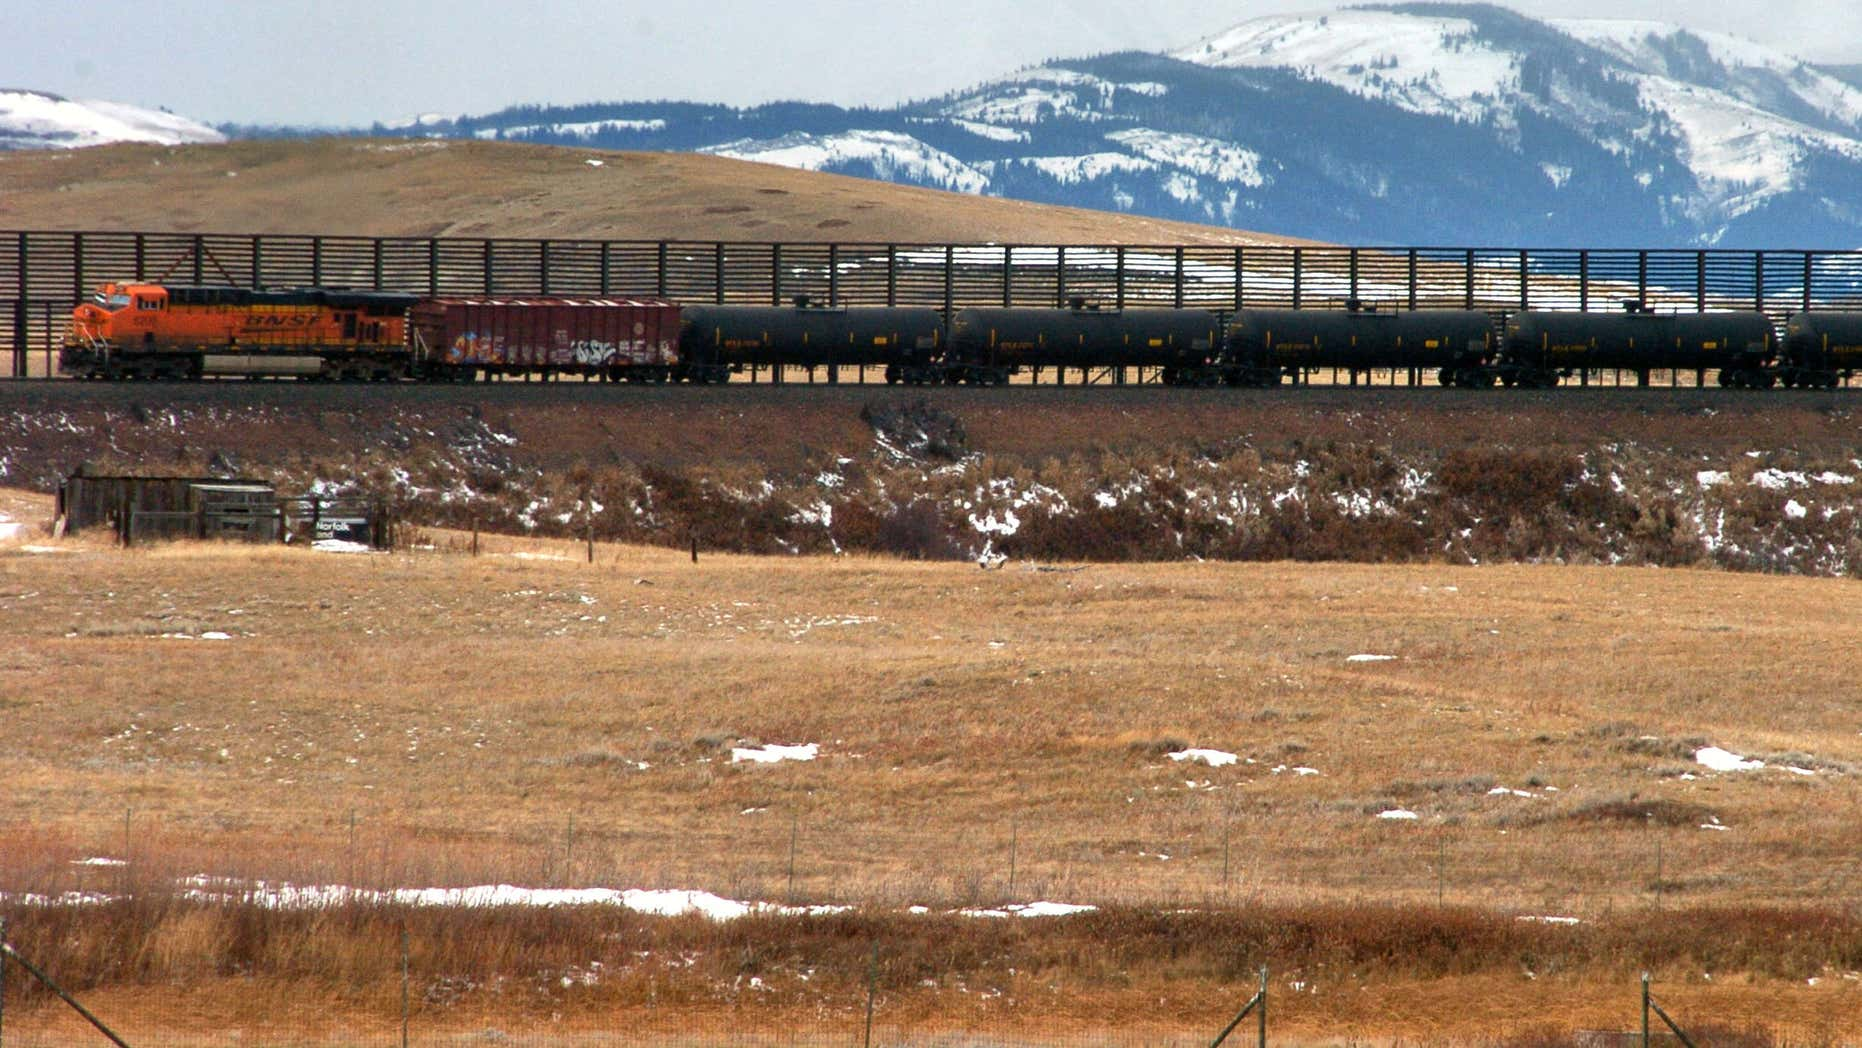 FIILE - In this Nov. 7, 2013, file photo, a train hauls oil into Glacier National Park near the Badger-Two Medicine National Forest in northwest Montana.